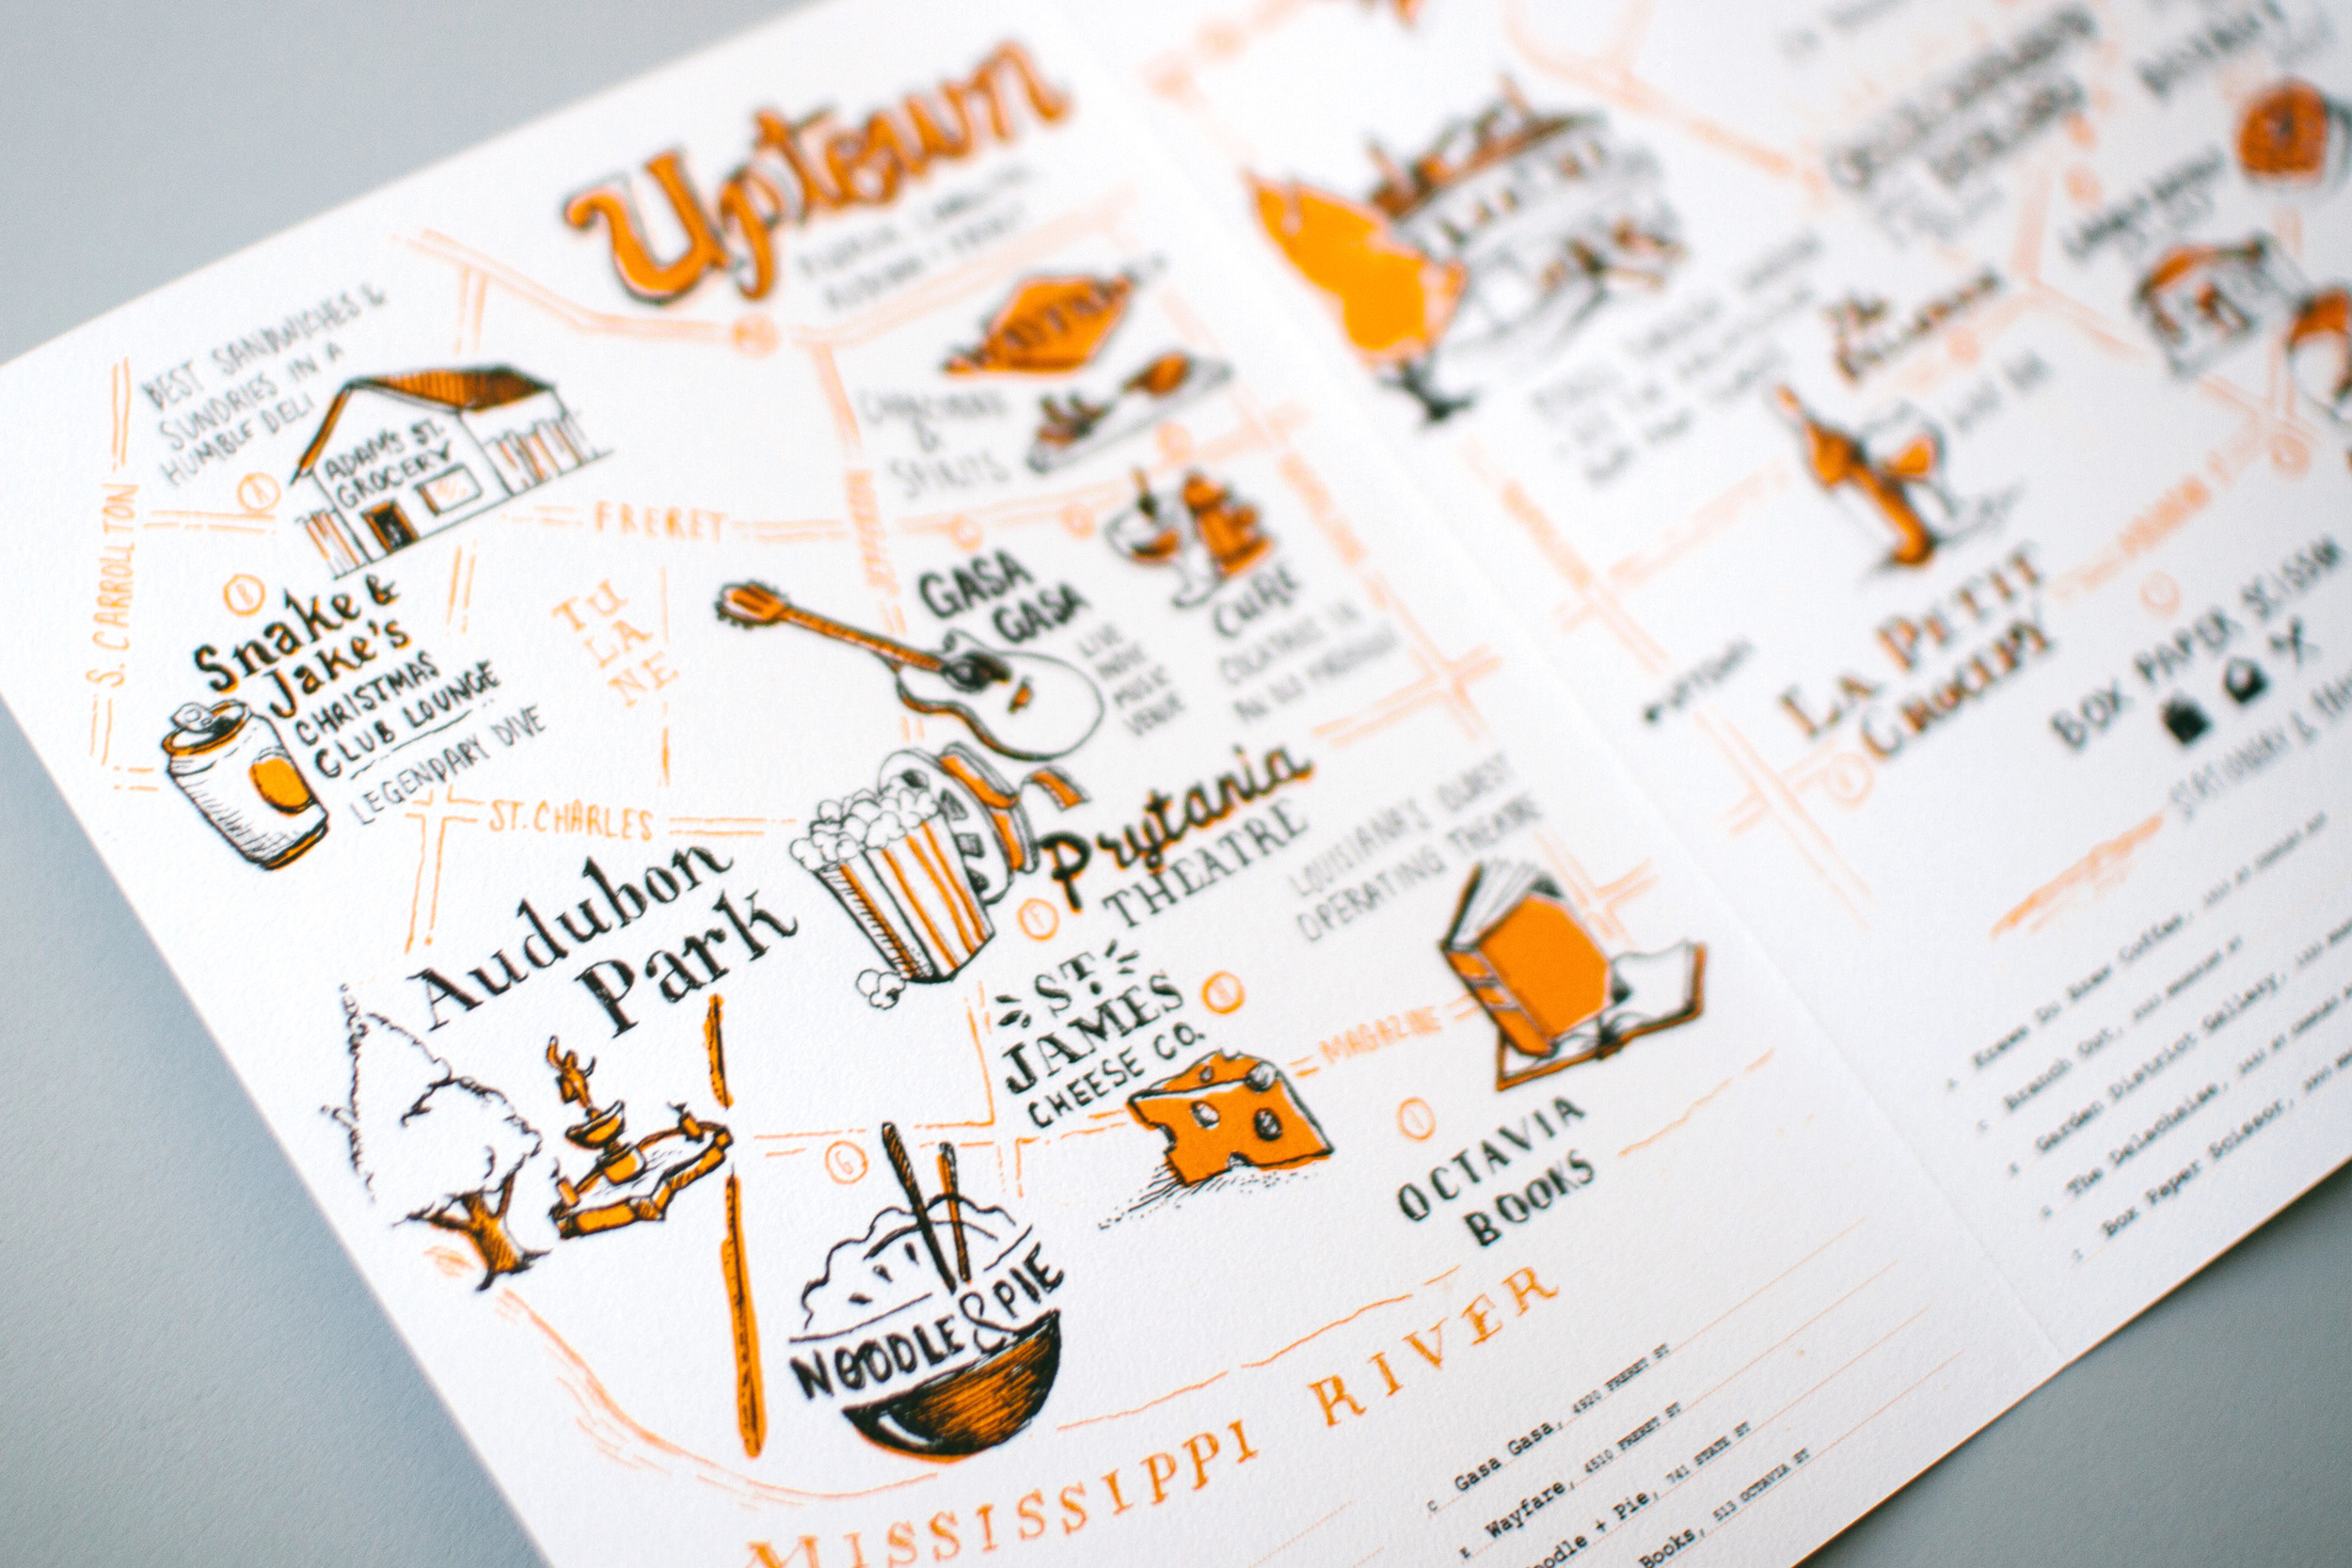 Up close detail of the Uptown illustrated map